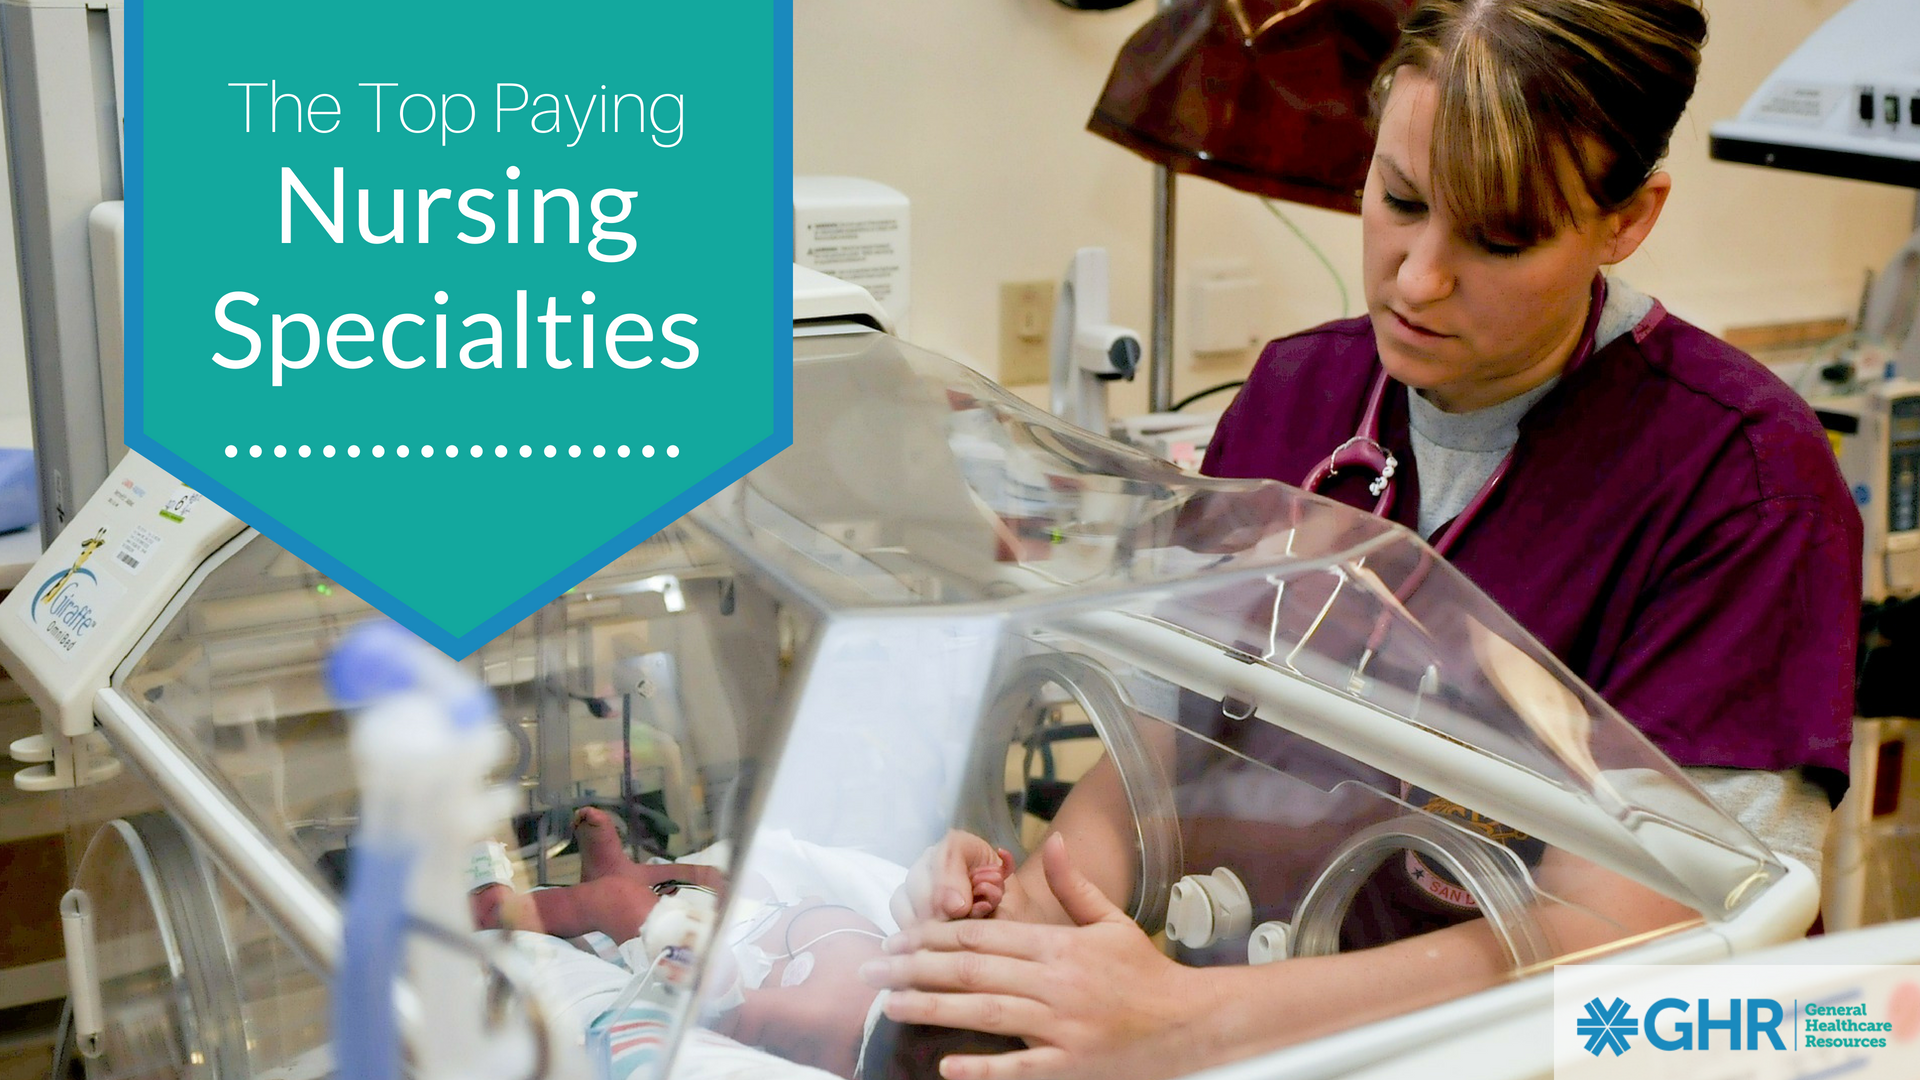 The Top PayingNursingSpecialties - GHR